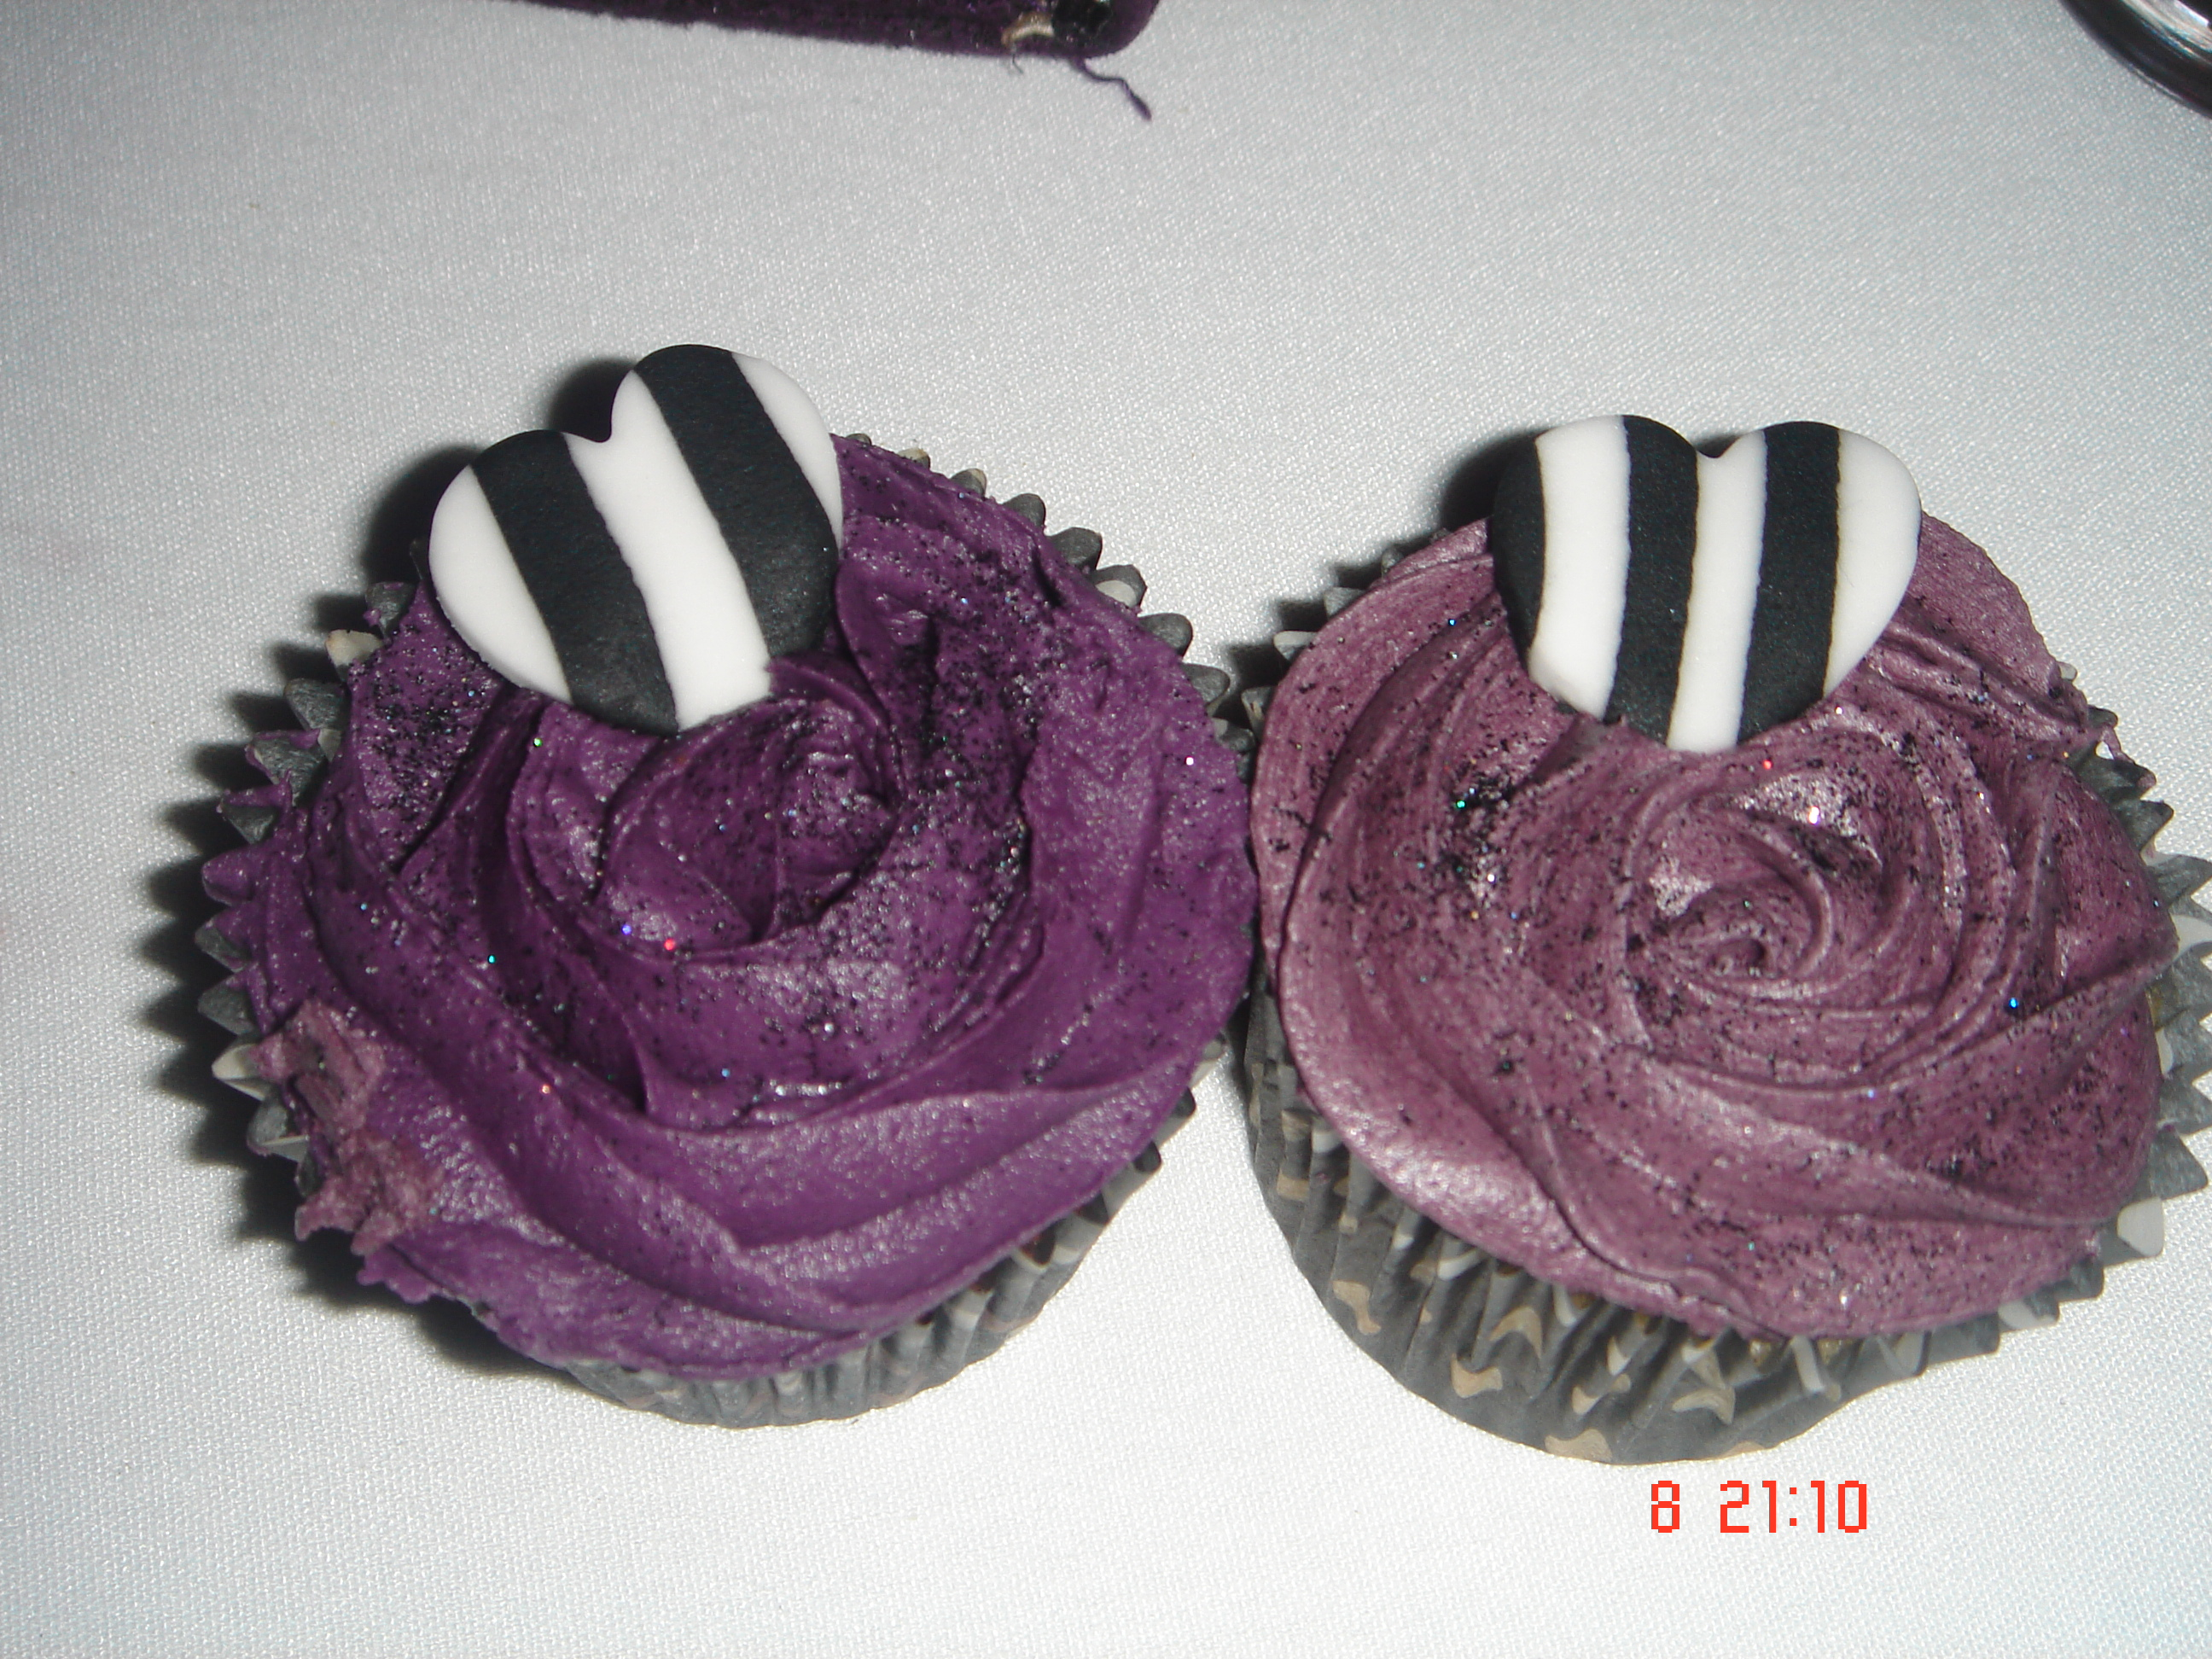 Purple wedding cup cakes